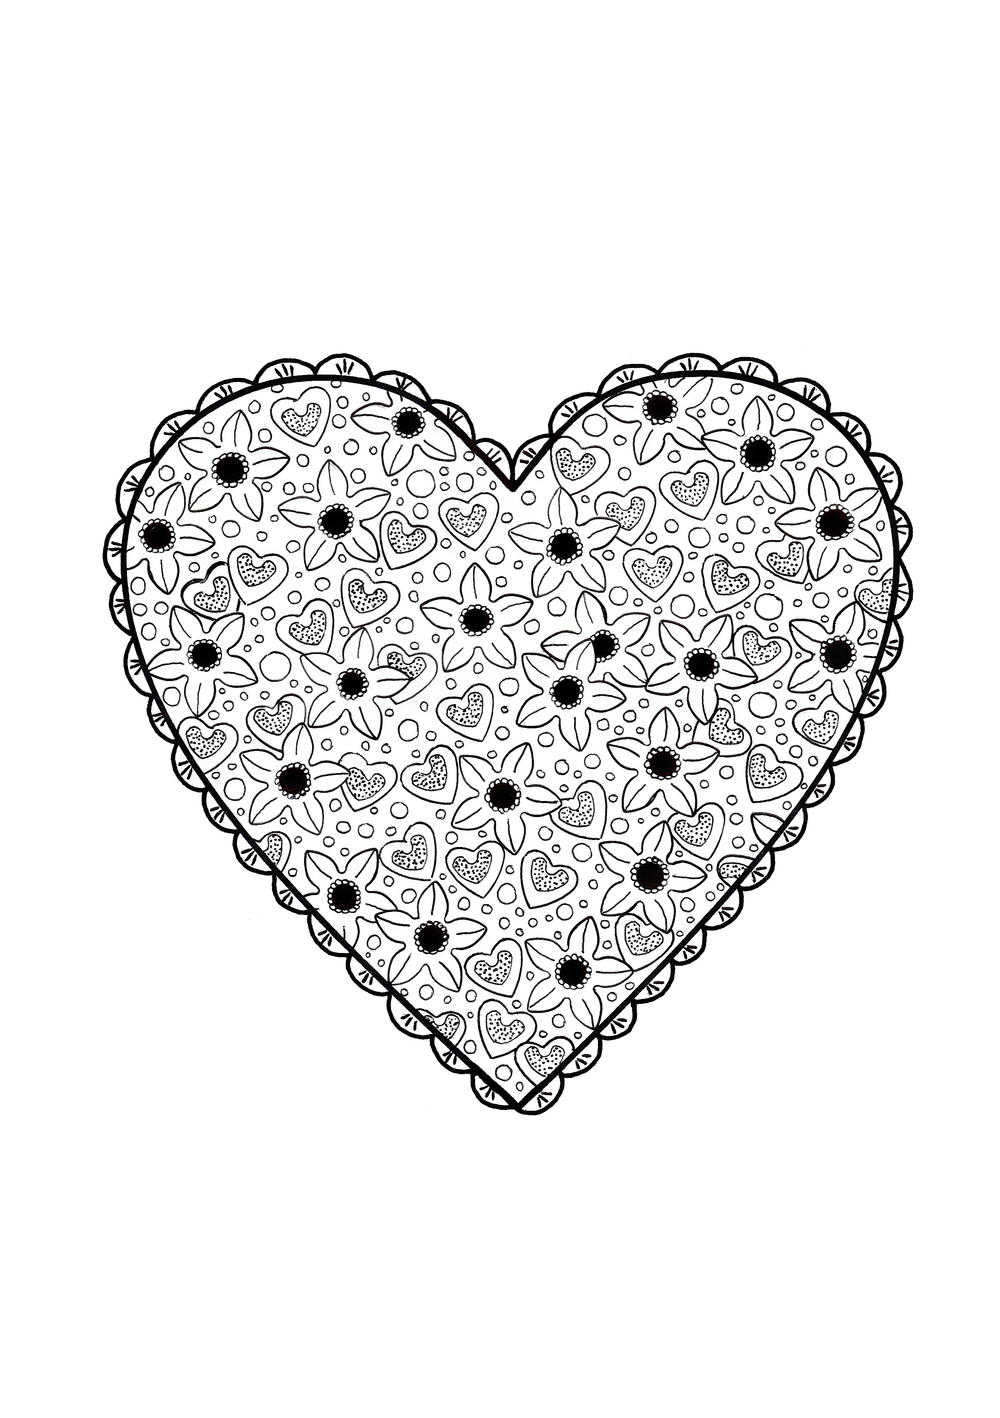 Cute Heart Valentines Day Coloring Page for Adults